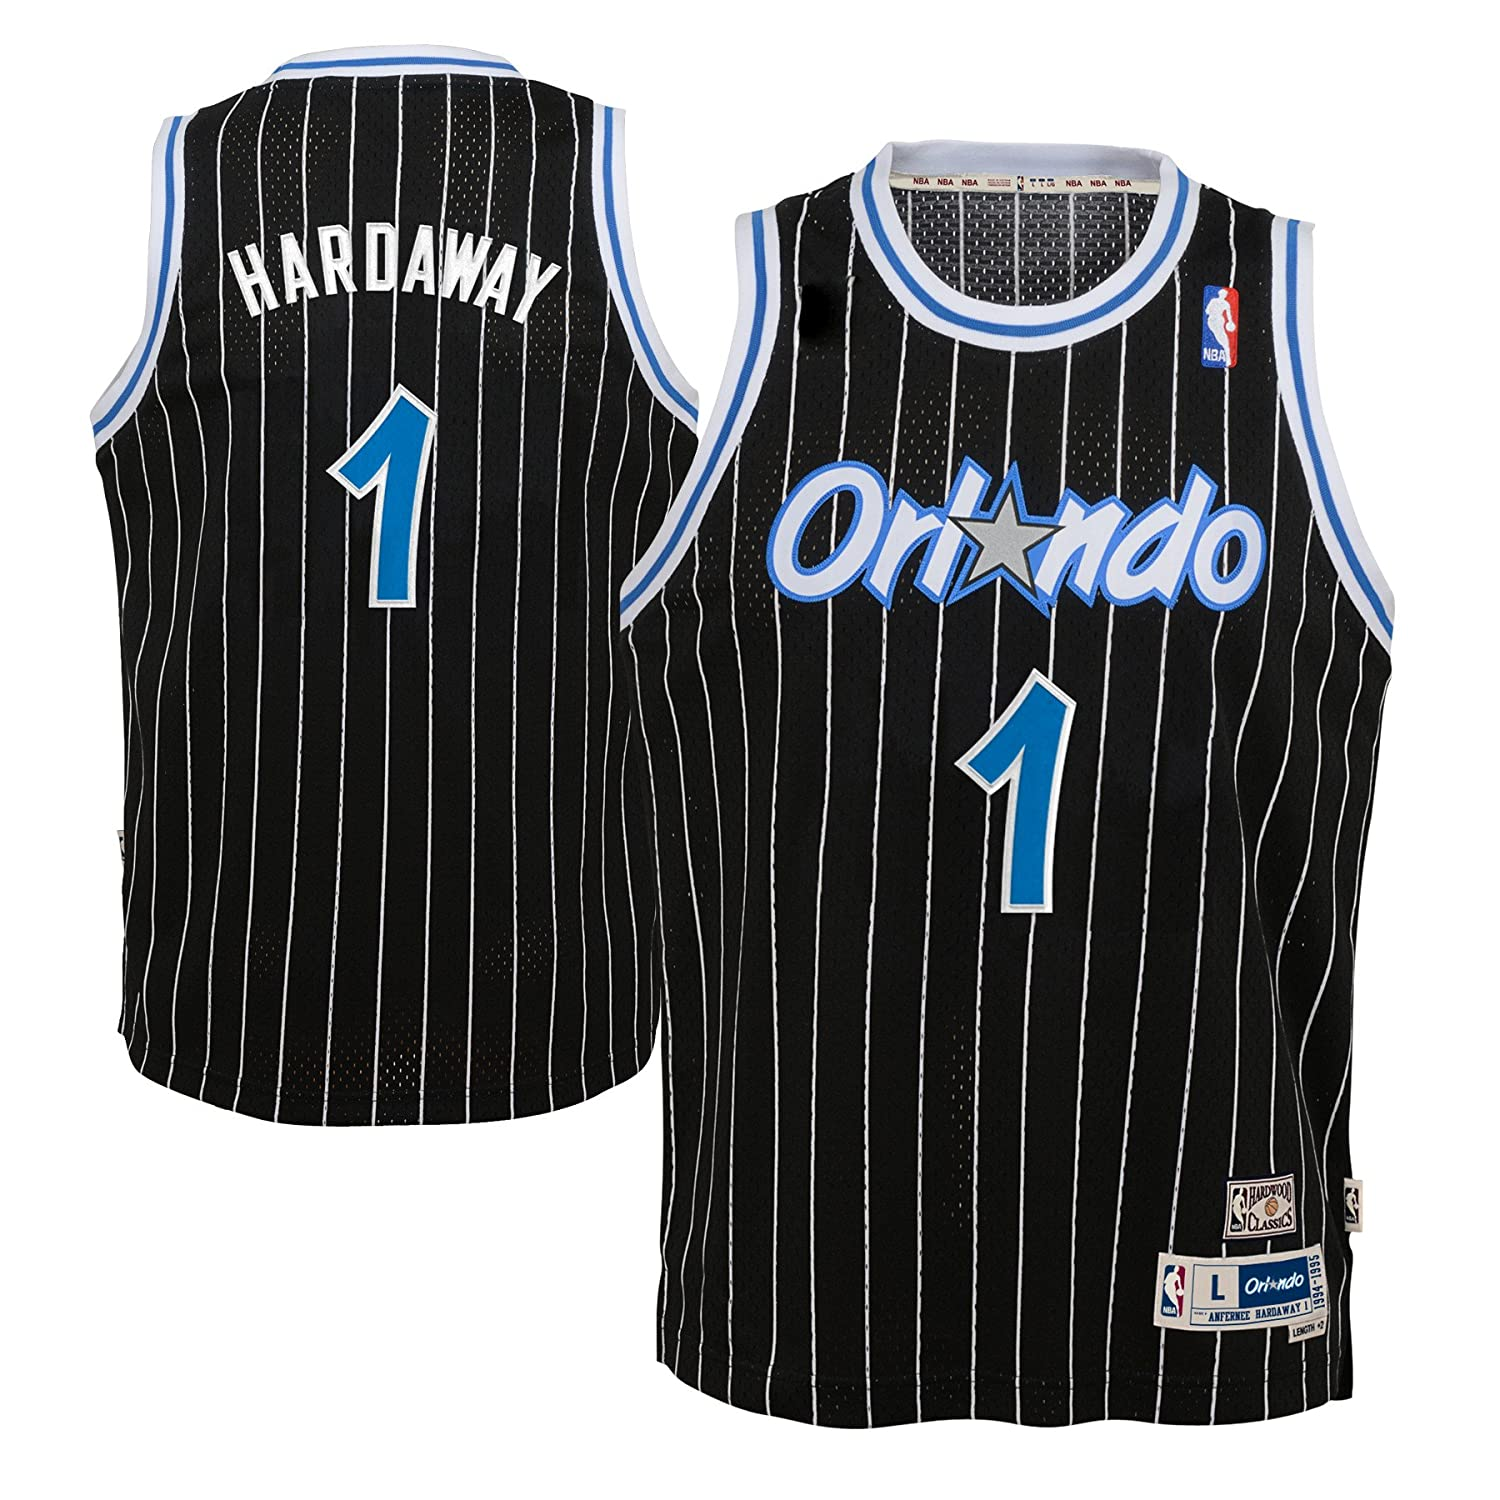 Amazon.com   Outerstuff Anfernee Hardaway Orlando Magic NBA Youth Throwback Swingman  Jersey - Black   Sports   Outdoors 69208ab5a